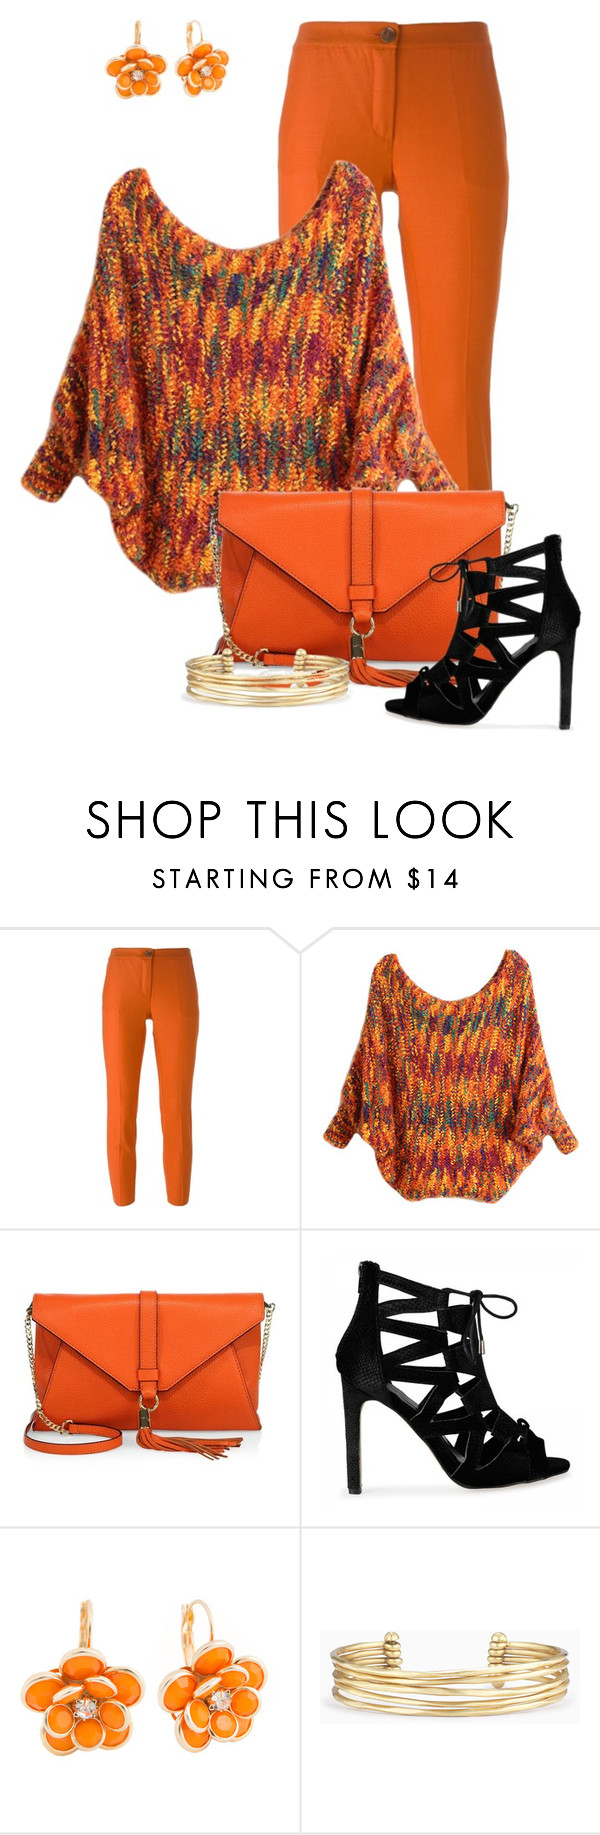 """""""The Big Orange"""" by scandalicious ❤ liked on Polyvore featuring Erika Cavallini Semi-Couture, Milly, Mixit and Stella & Dot"""